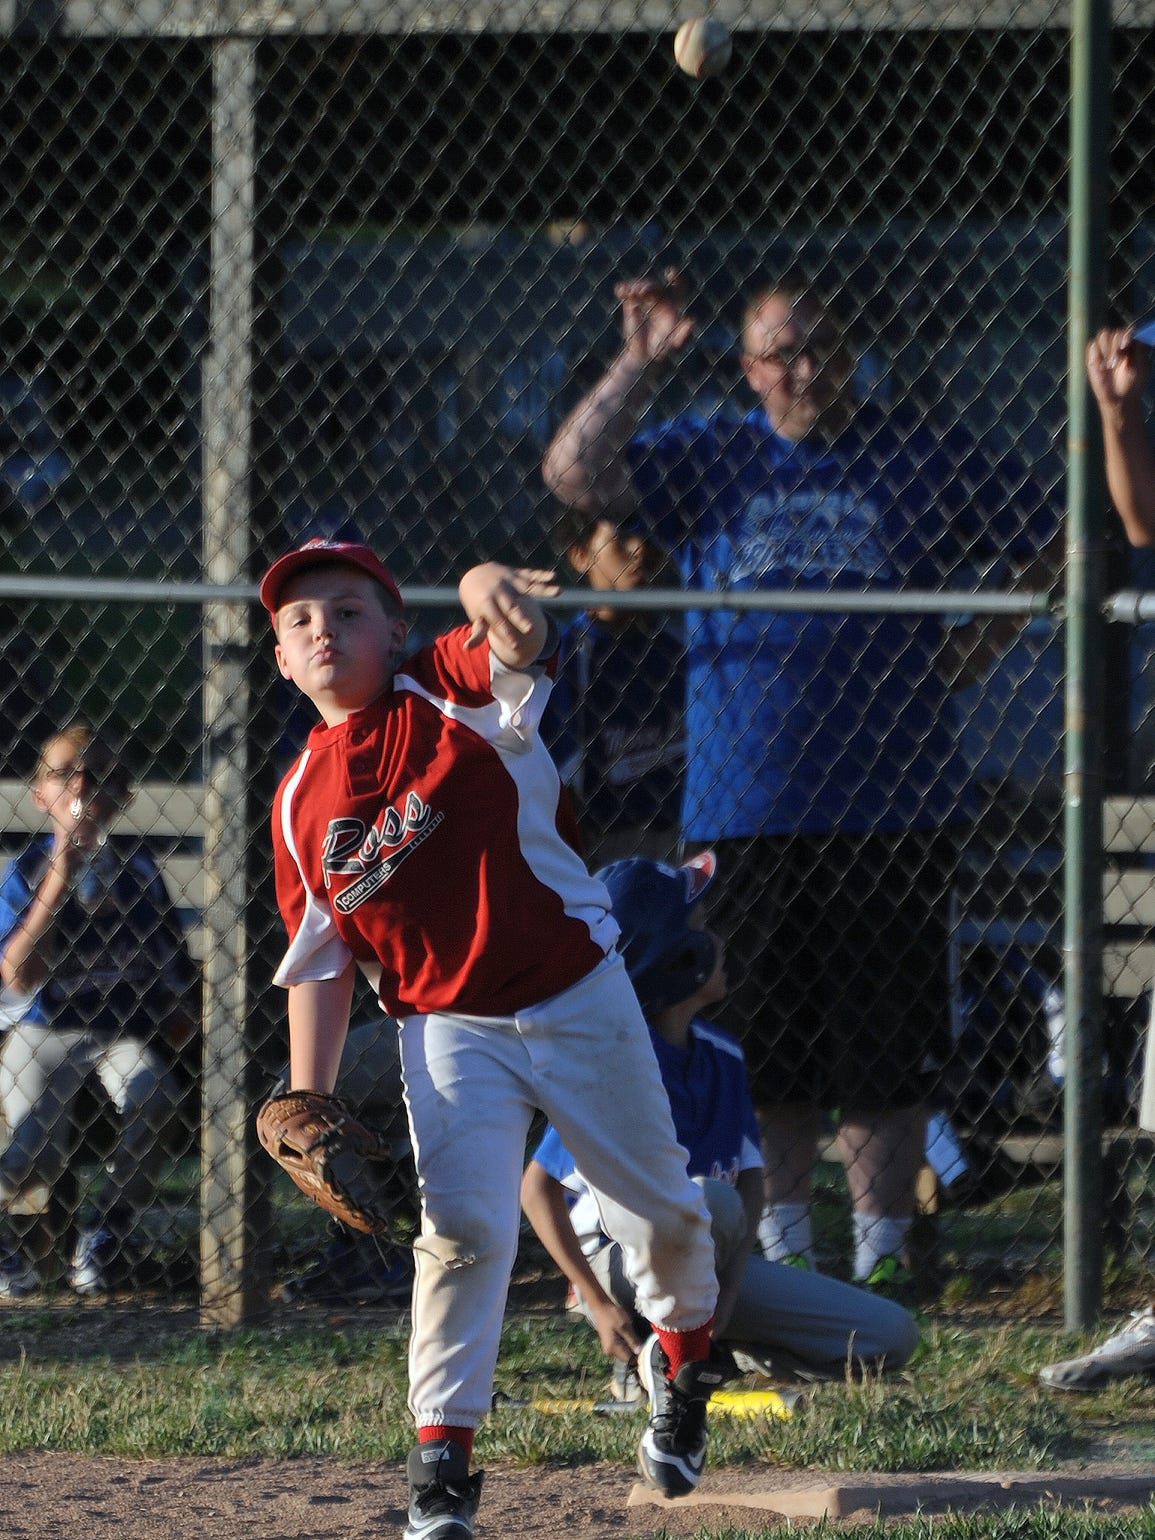 Jack Oyer throws the ball to a teammate during a game